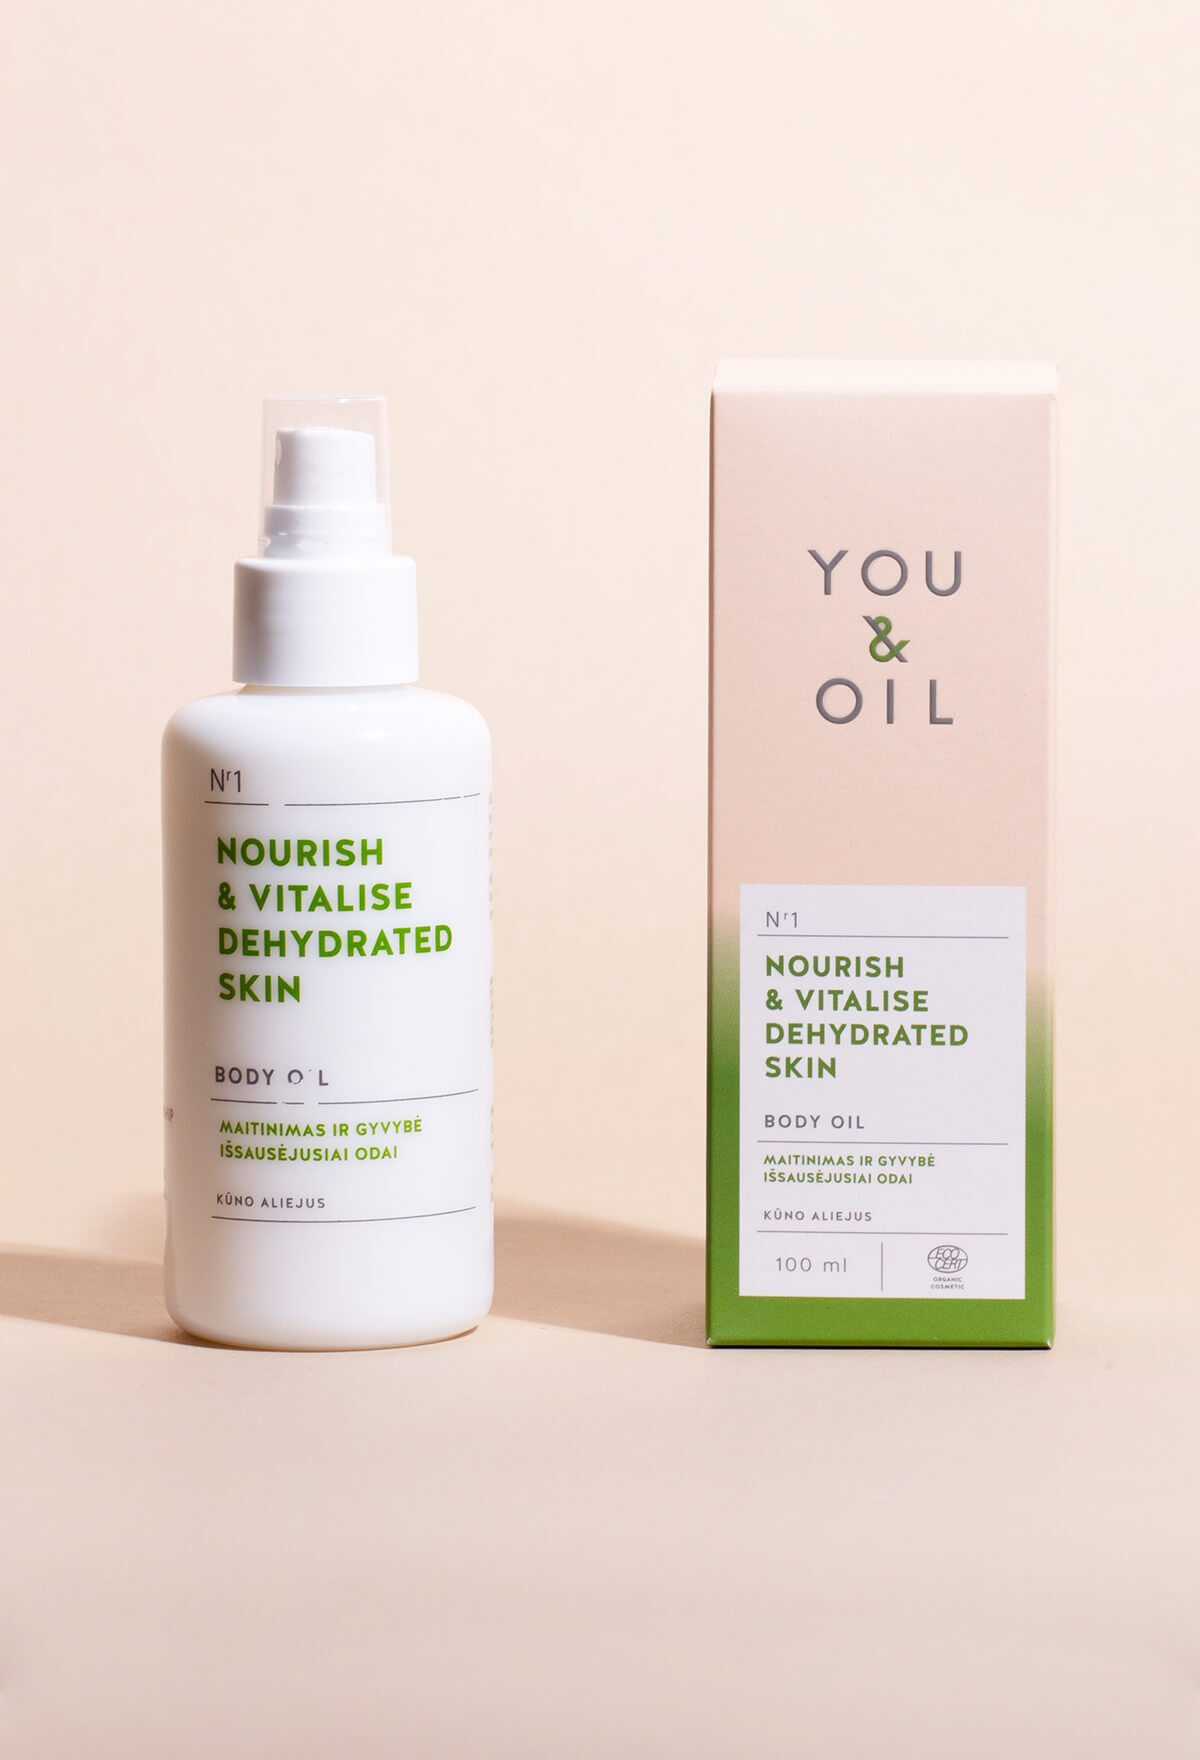 1301Nourish & Vitalise Dehydrated Skin